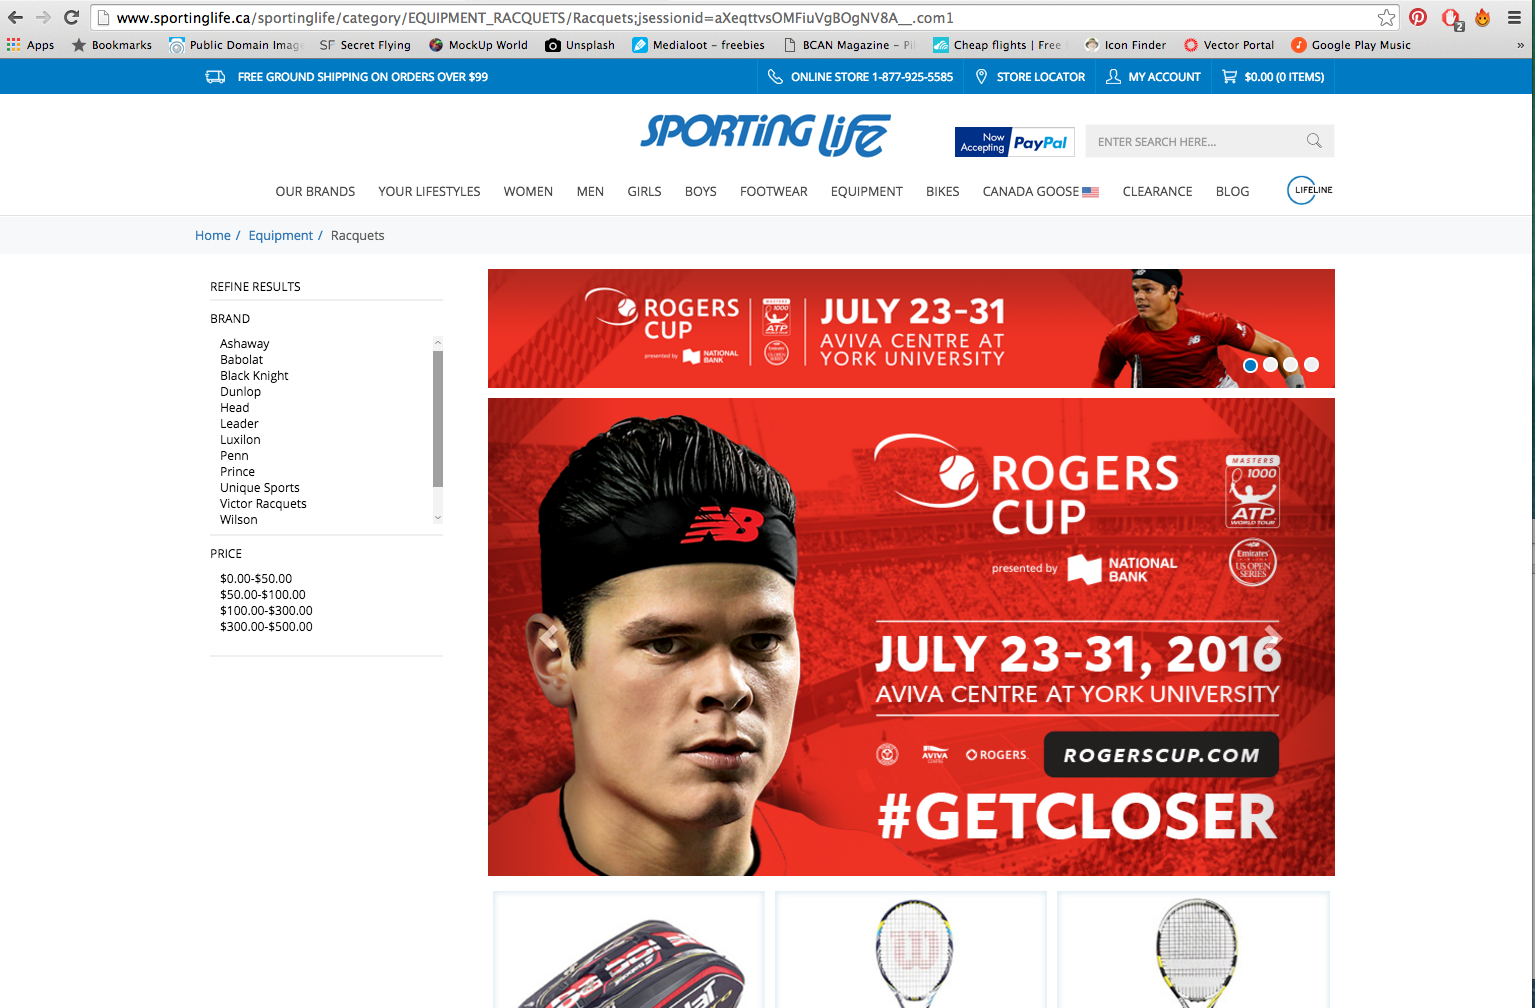 Web Banners for Sporting Life website